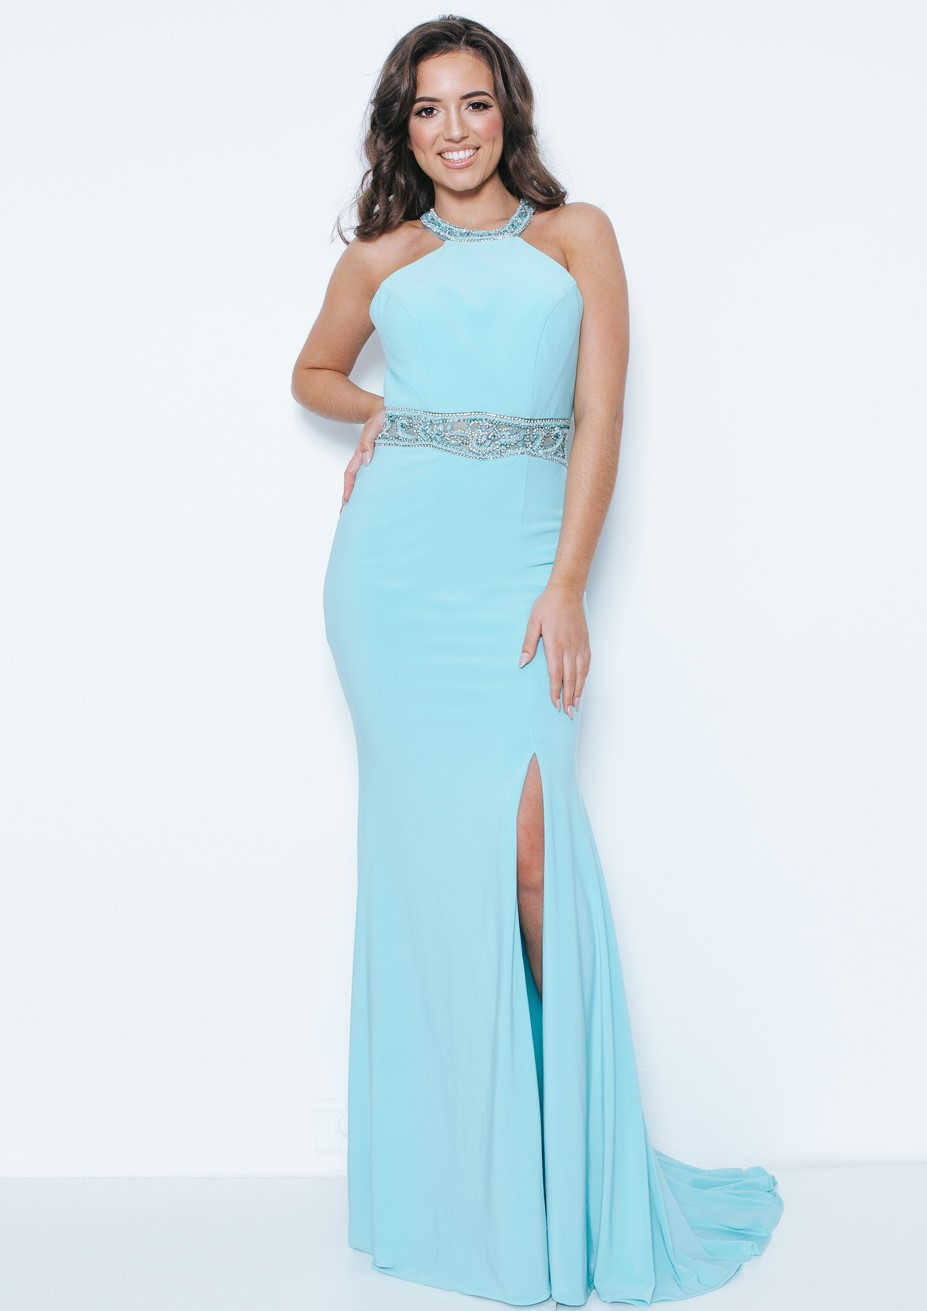 20f591c1eae Sophisticated Prom Dresses Uk - Aztec Stone and Reclamations